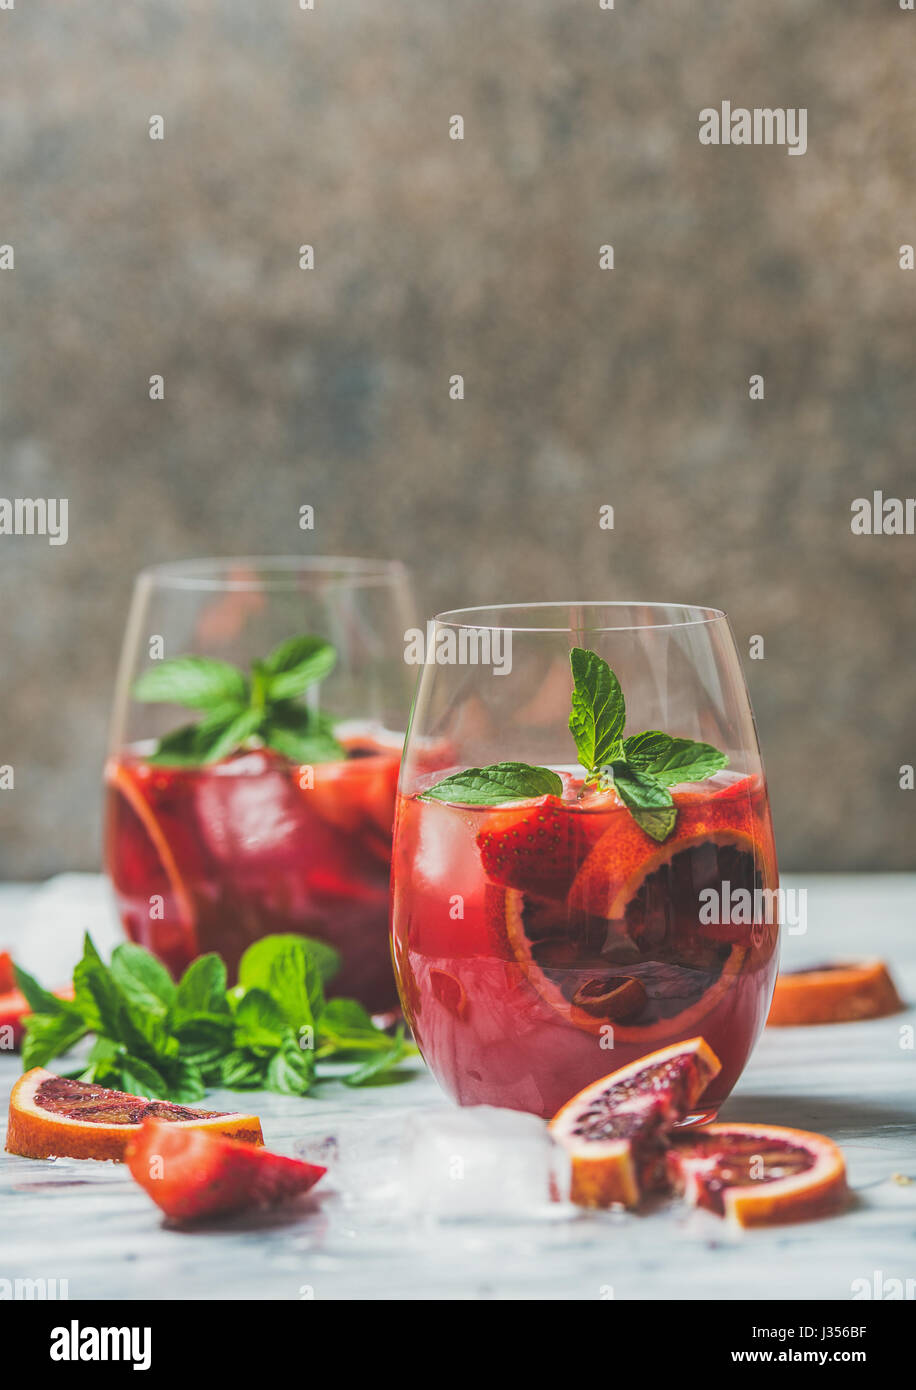 Orange sanguine et Sangria estivale fraise à la menthe et de la glace Photo Stock